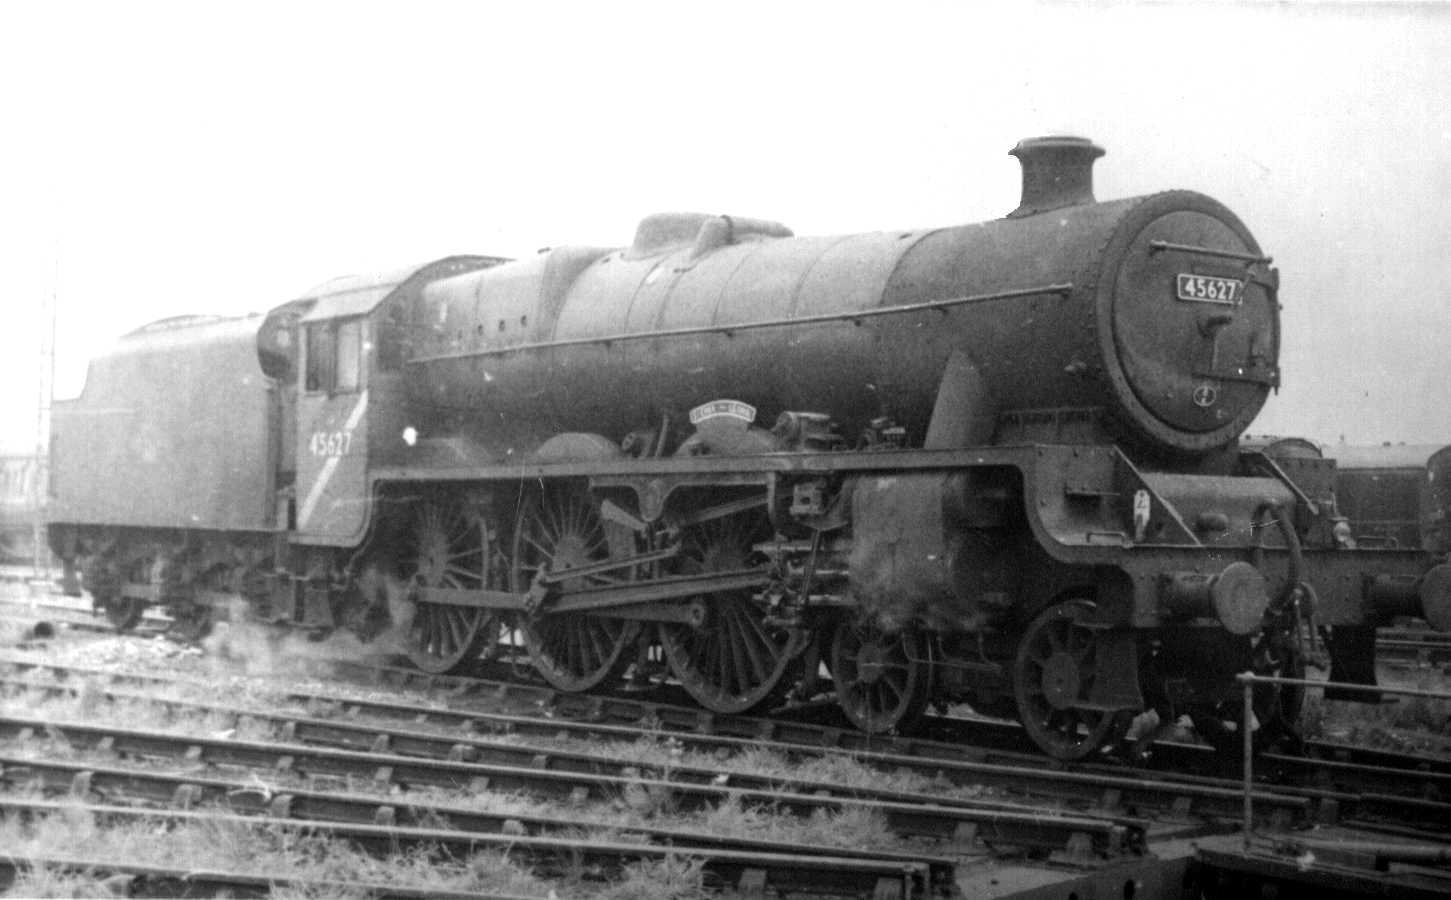 45627 Sierra Leone at Blackpool North, 19 July 1965